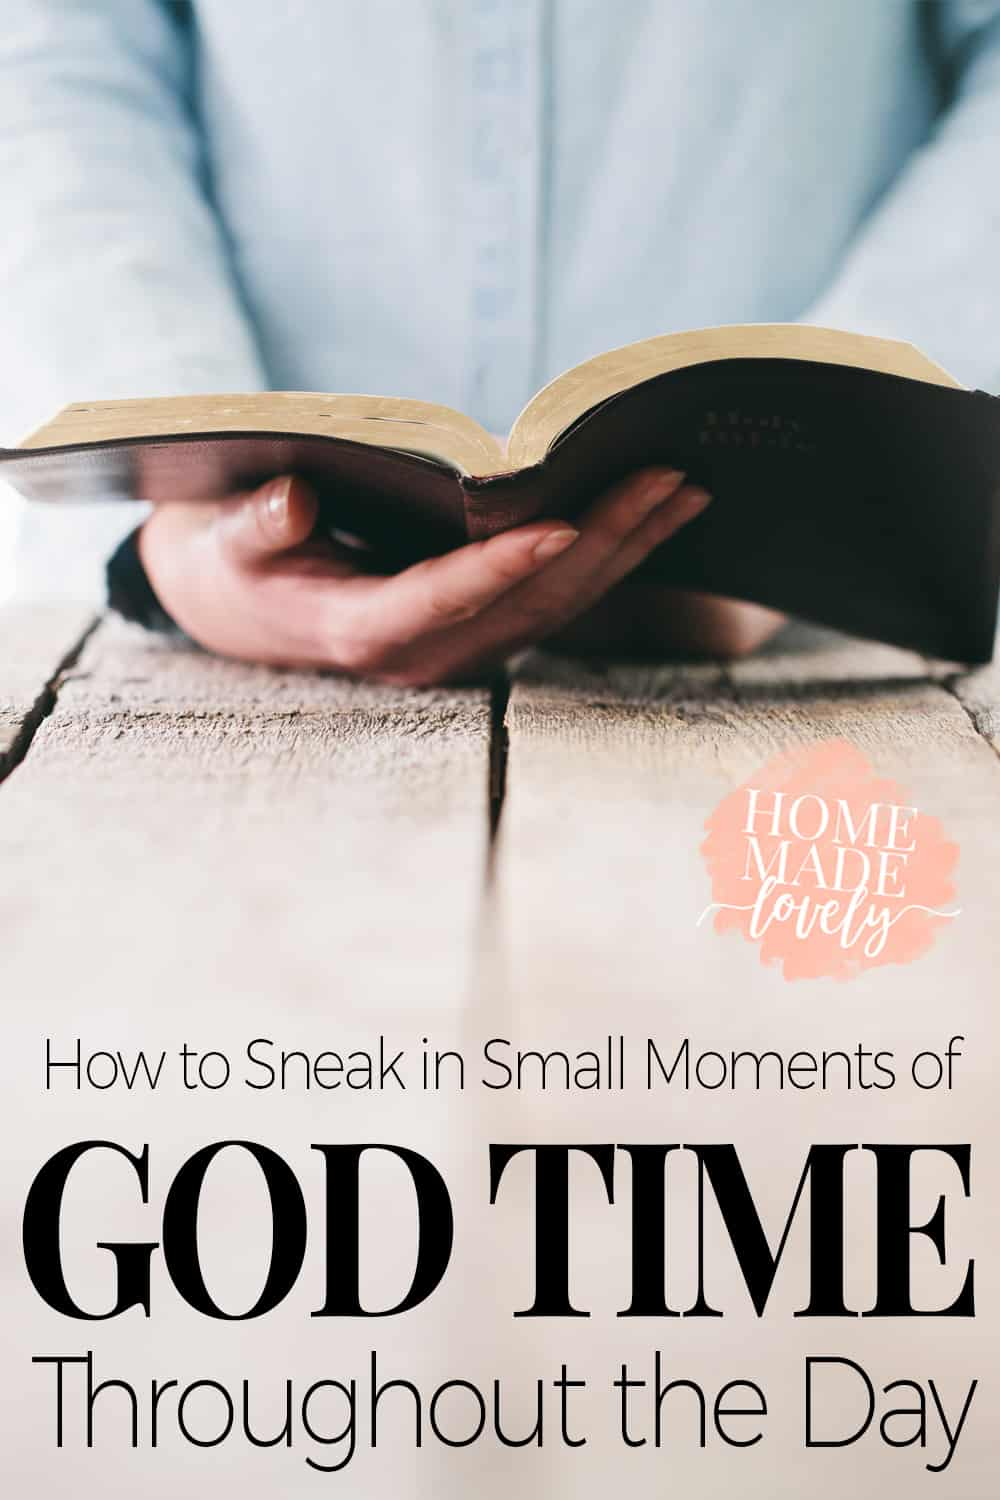 Have you ever been crawling into bed and realized you didn't spend any time with God? Sometimes this is mind boggling! This just means that you need to be more intentional with spending time with God throughout the day. Here are some ways you can sneak in small moments of God time throughout the day.